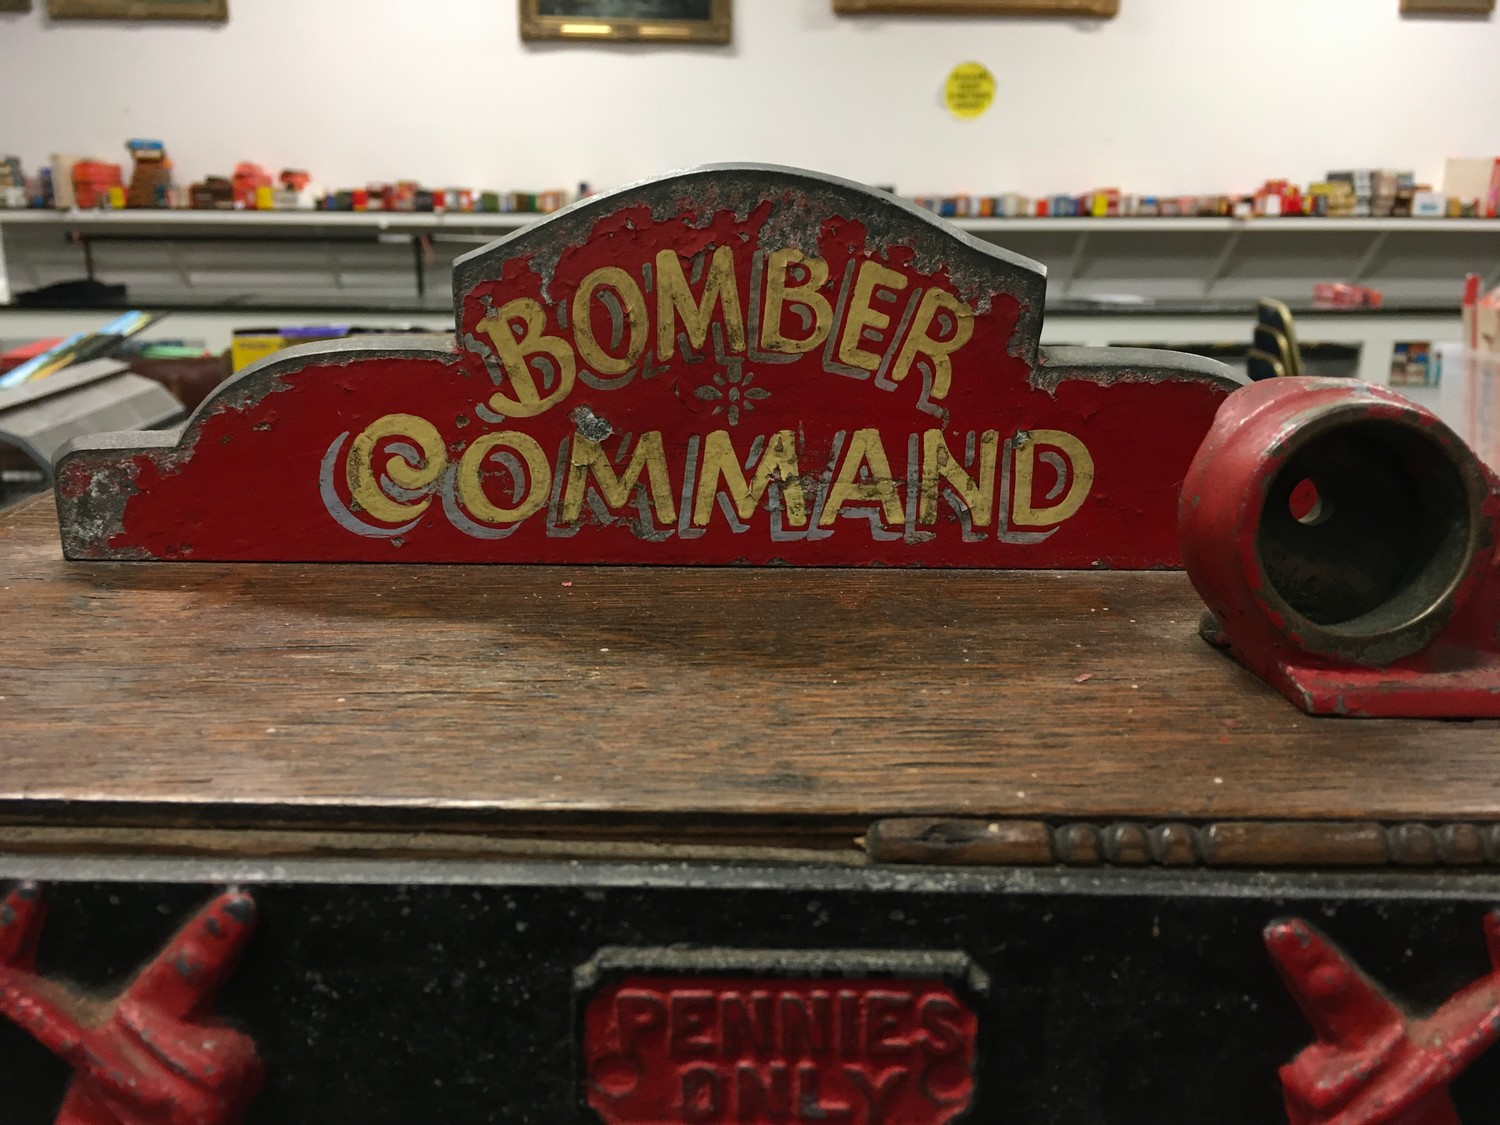 Bomber Command Slot Machine. Works on 1d coin. Mills Mechanism. - Image 5 of 8